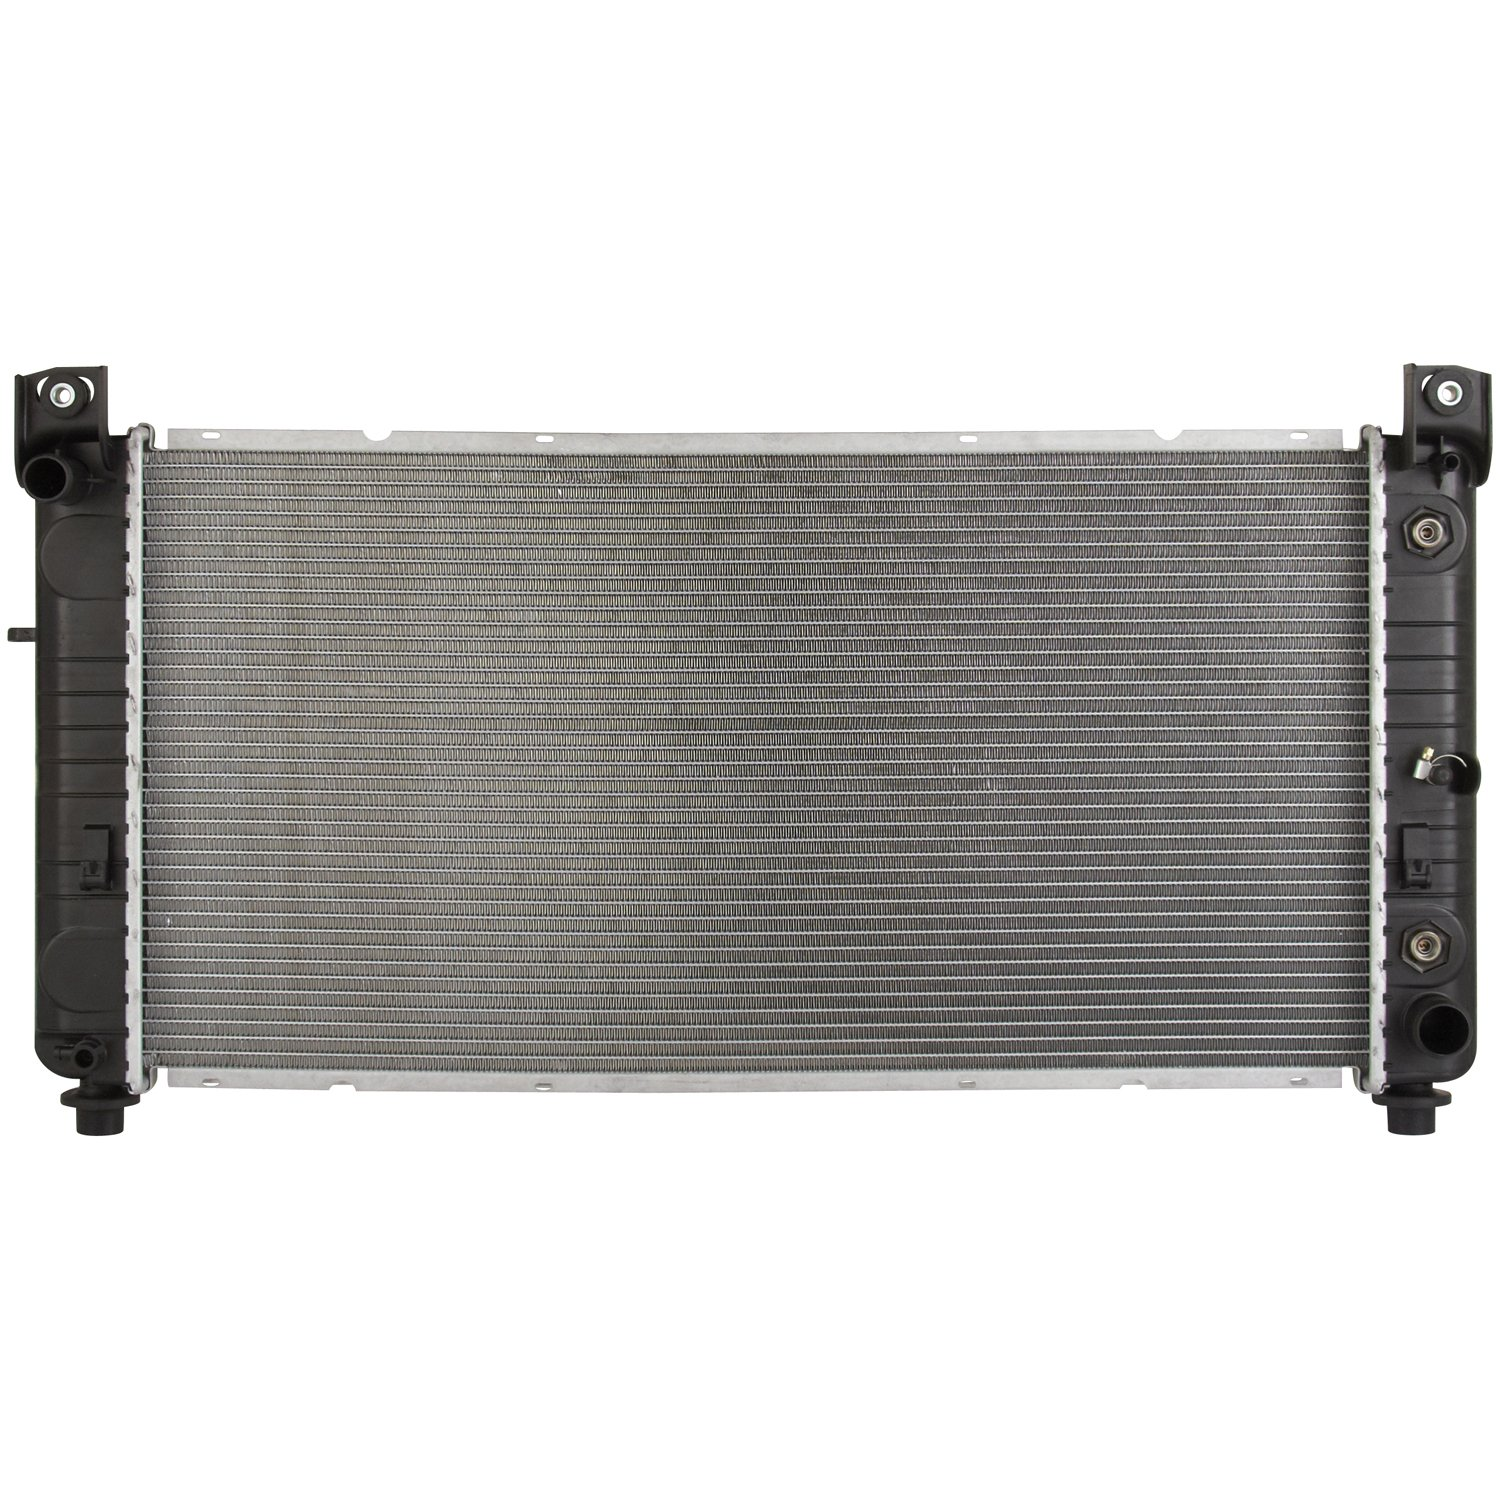 Spectra Premium CU2423 Complete Radiator for General Motors